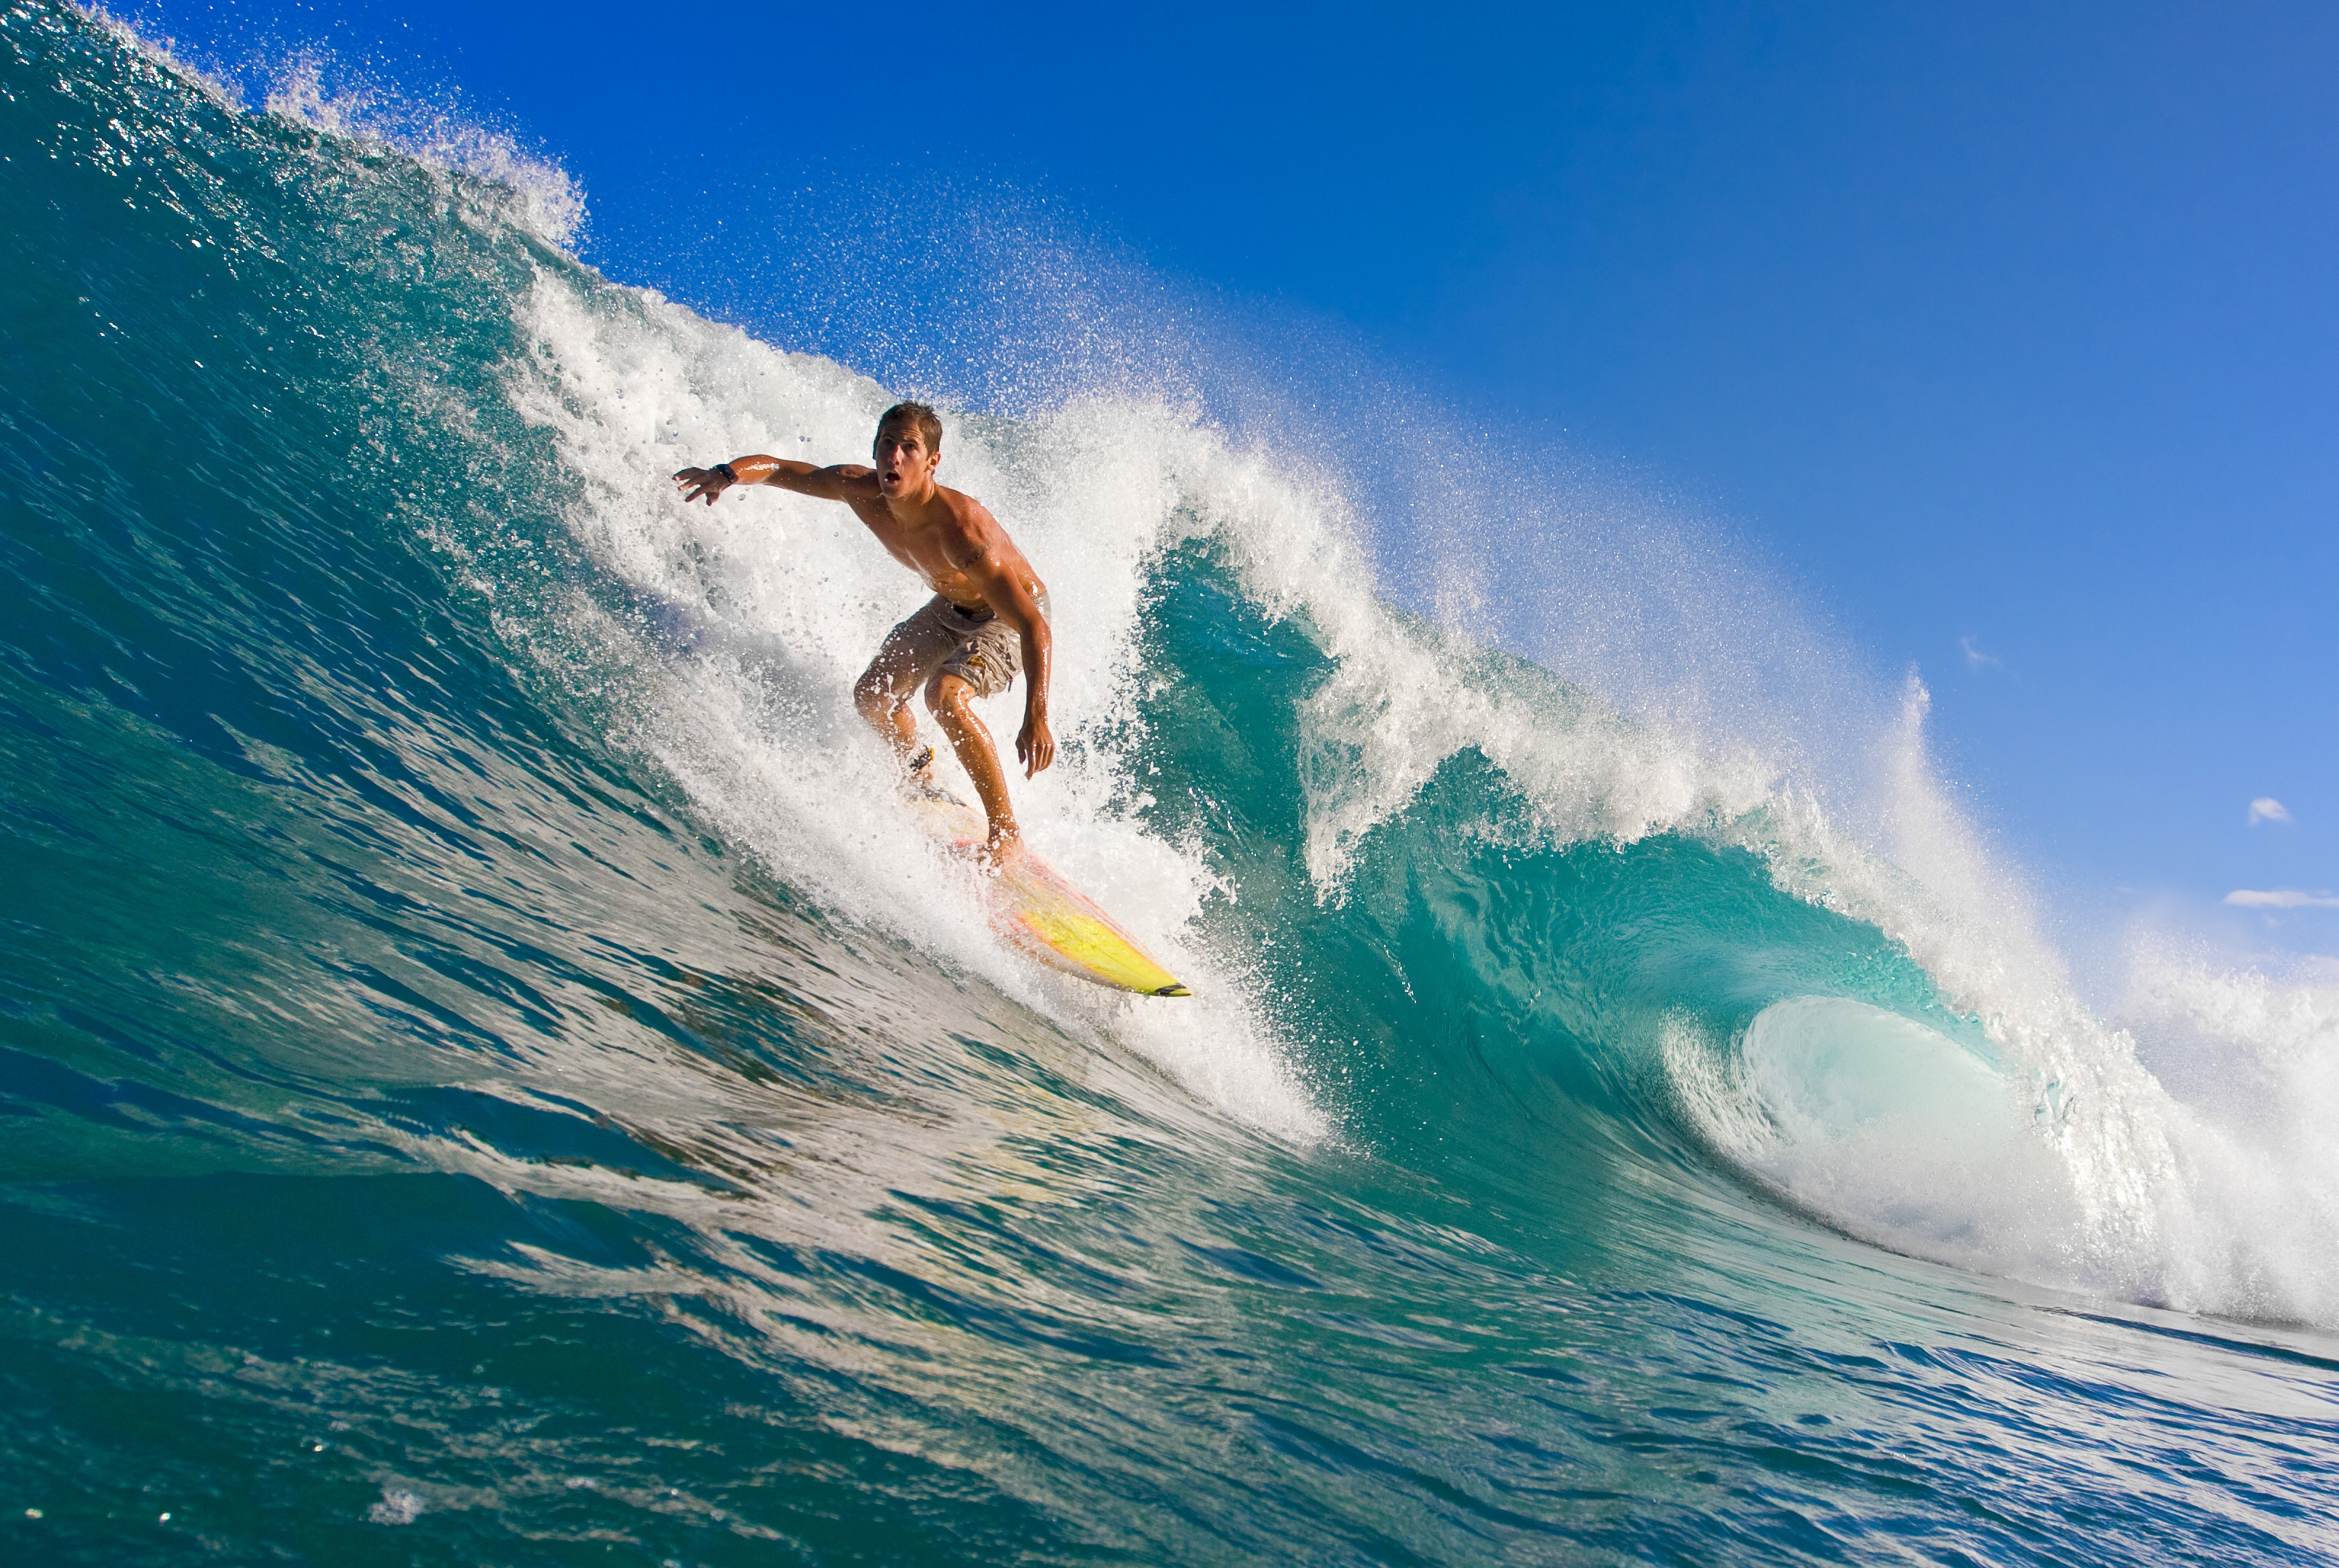 surfing is a sport essay Windsurfing is a surface water sport that combines elements of surfing and sailing it consists of a board usually 25 to 3 meters long, with displacements typically.